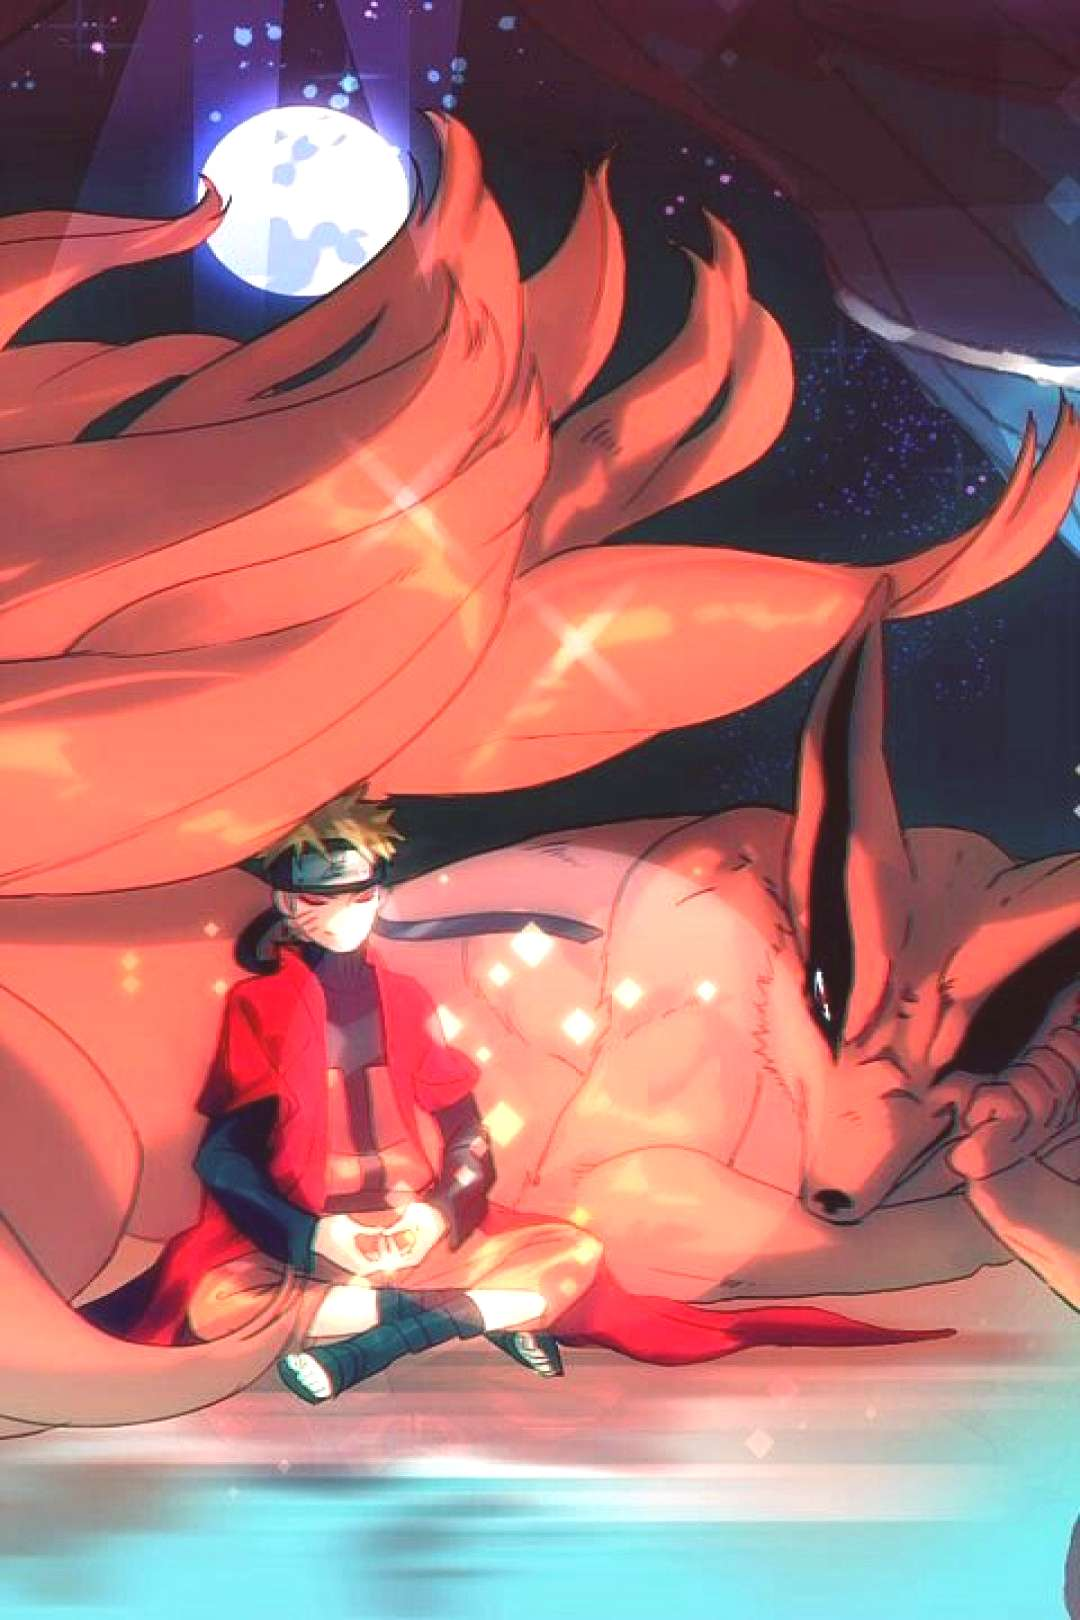 Love his demon The 9 tallied Fox i have no idea if i spelled